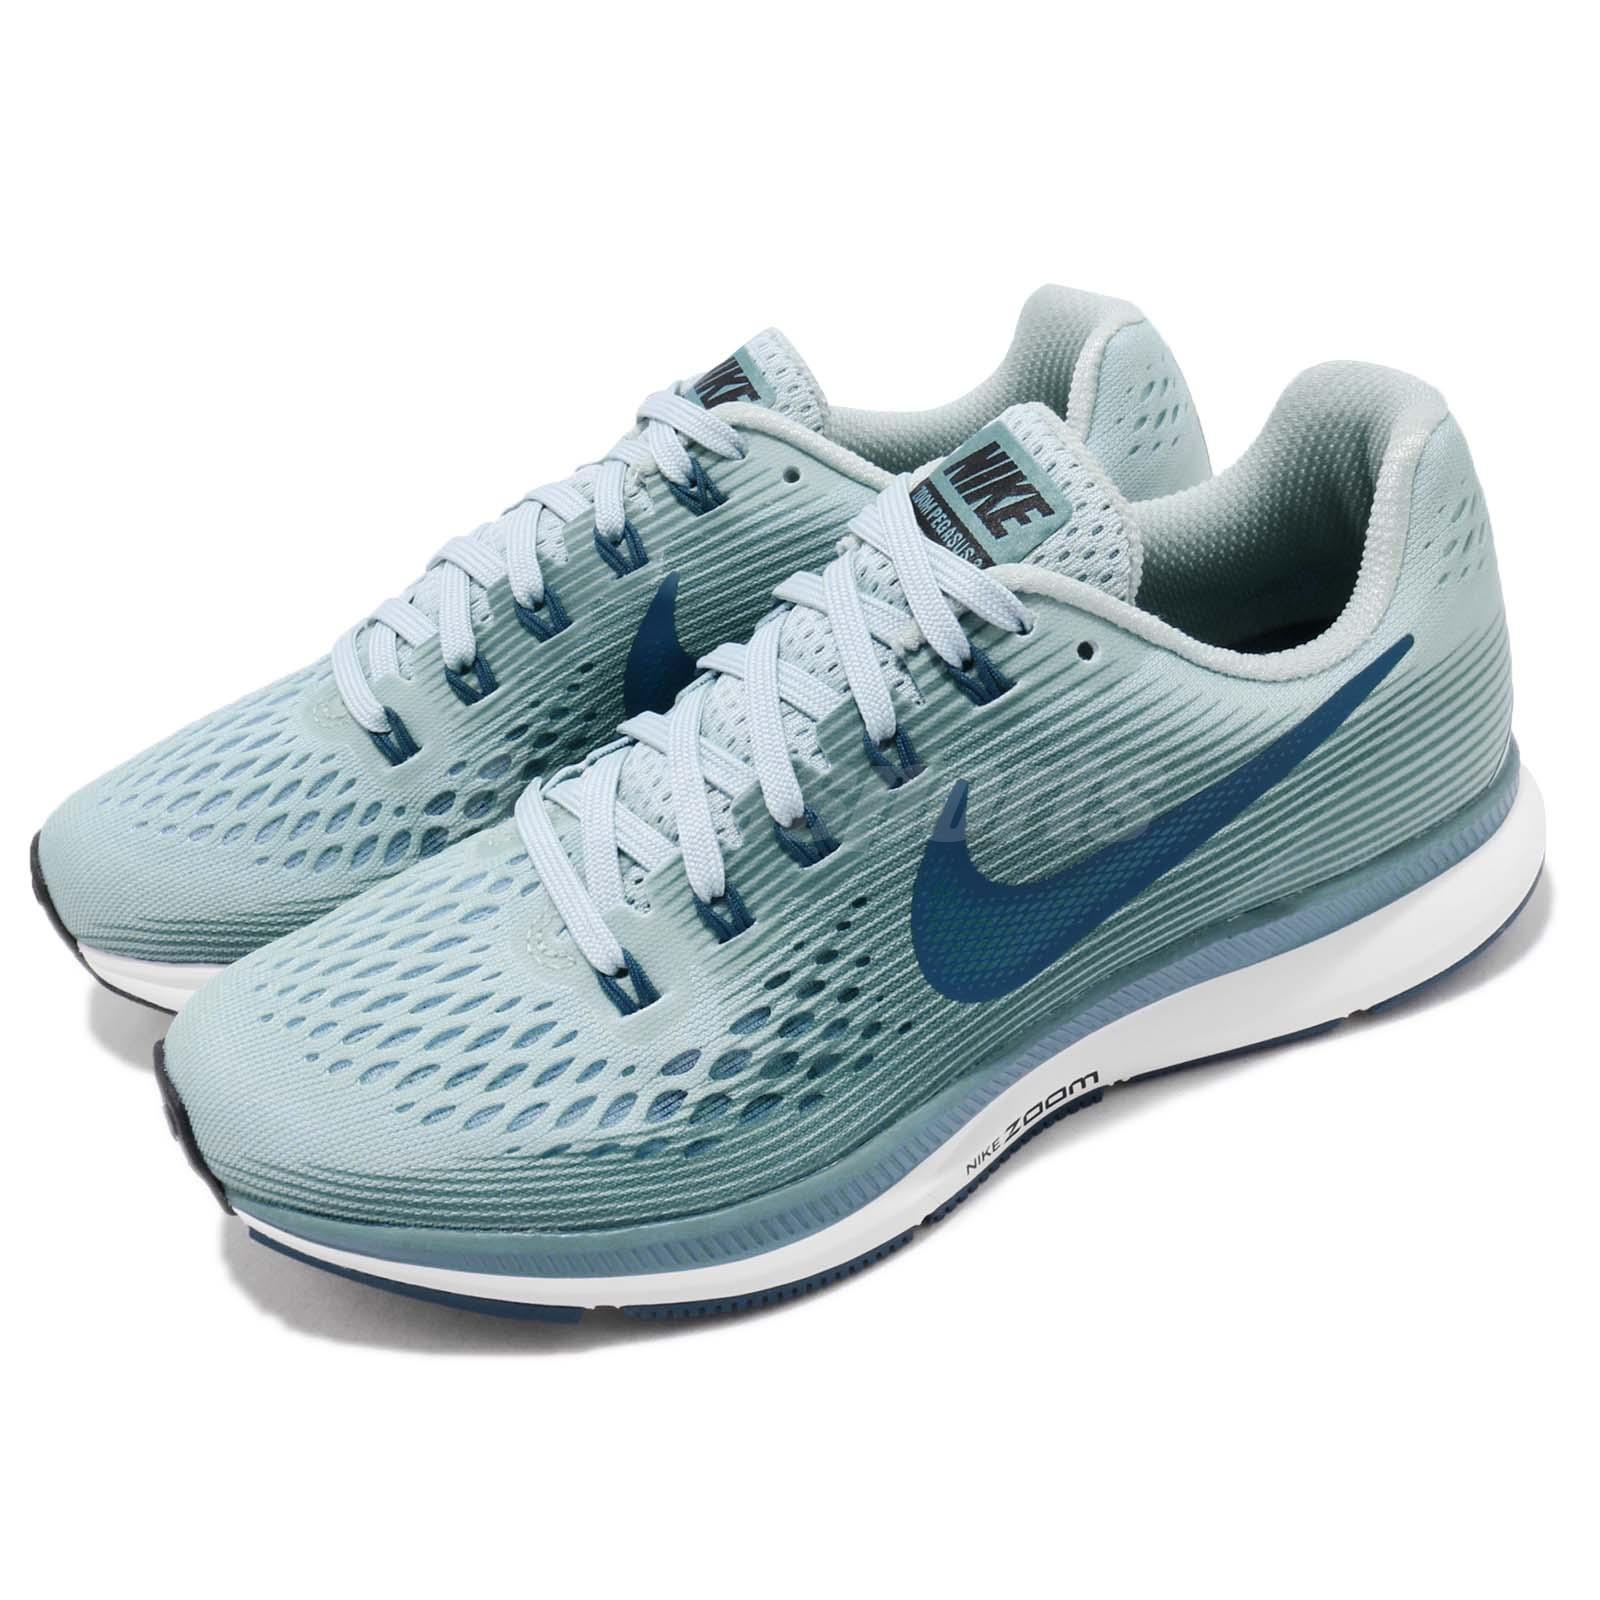 6e22c7ddfbc9 Details about Nike Wmns Air Zoom Pegasus 34 Ocean Bliss Blue Women Running  Shoes 880560-408